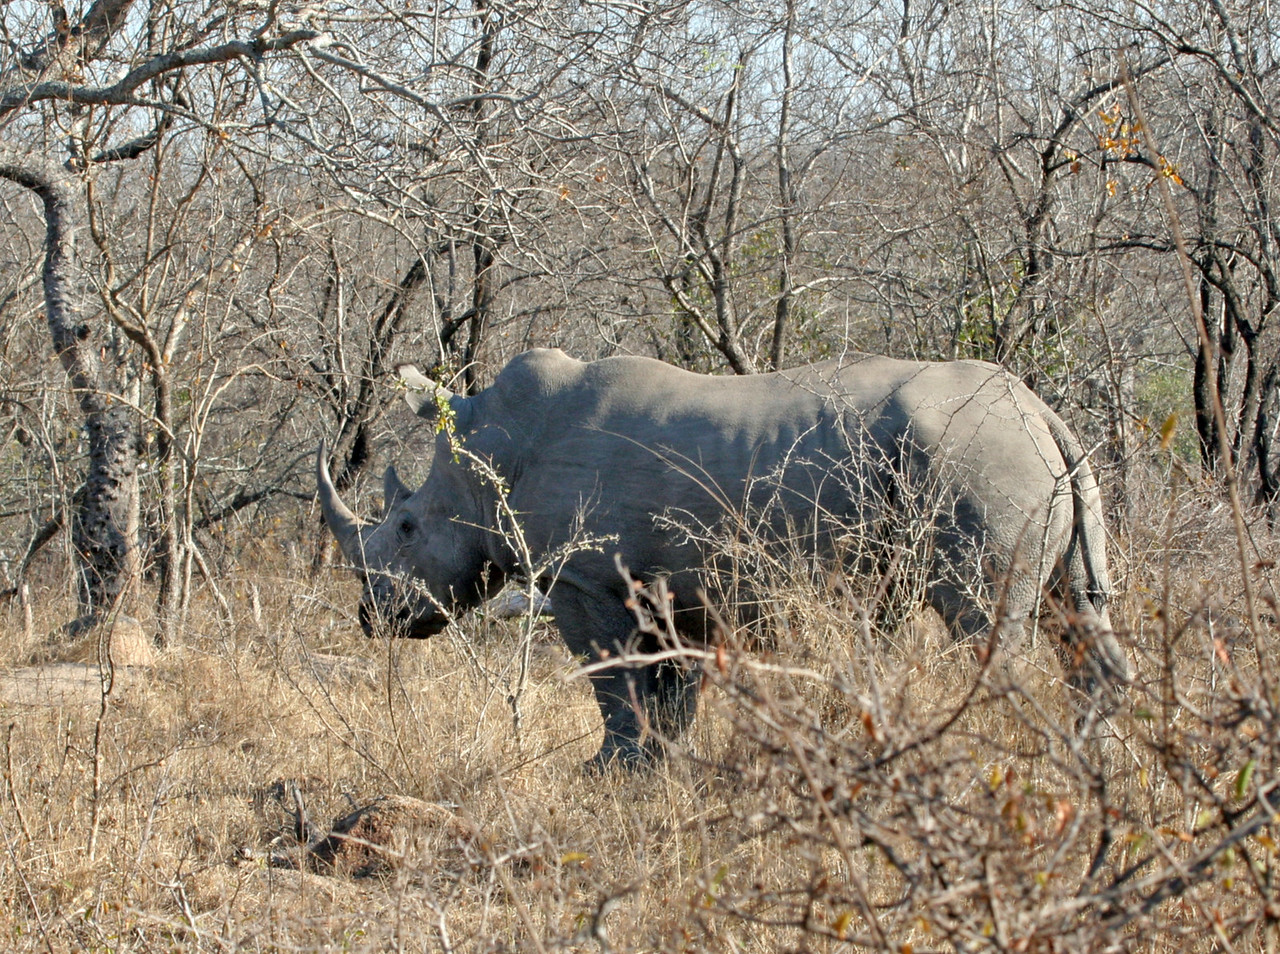 White Rhinoceros - Member of the Big 5 at Kwa Madwala Private Reserve